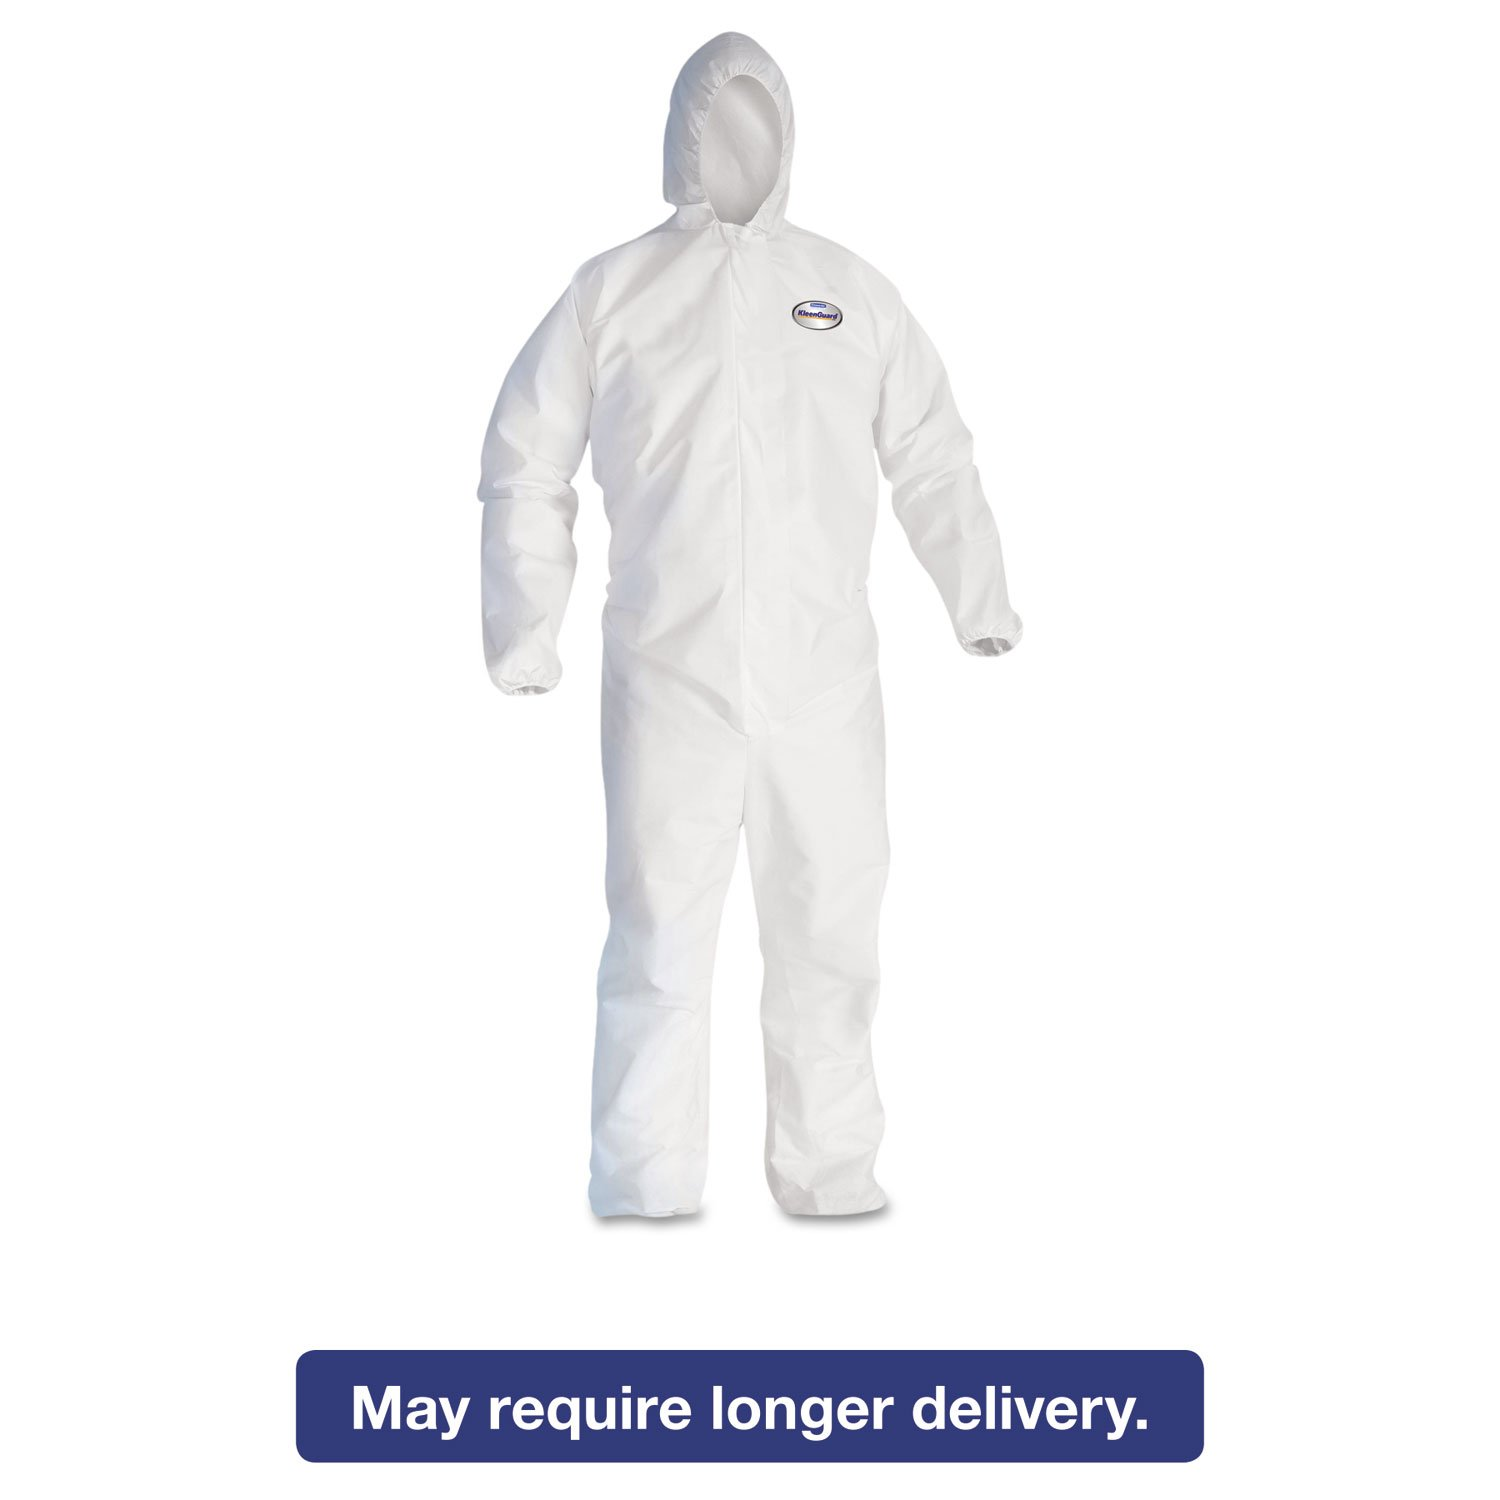 KCC46114 - Kleenguard A30 Elastic-back amp; Cuff Hooded Coveralls, White, X-large by Kimberly-Clark